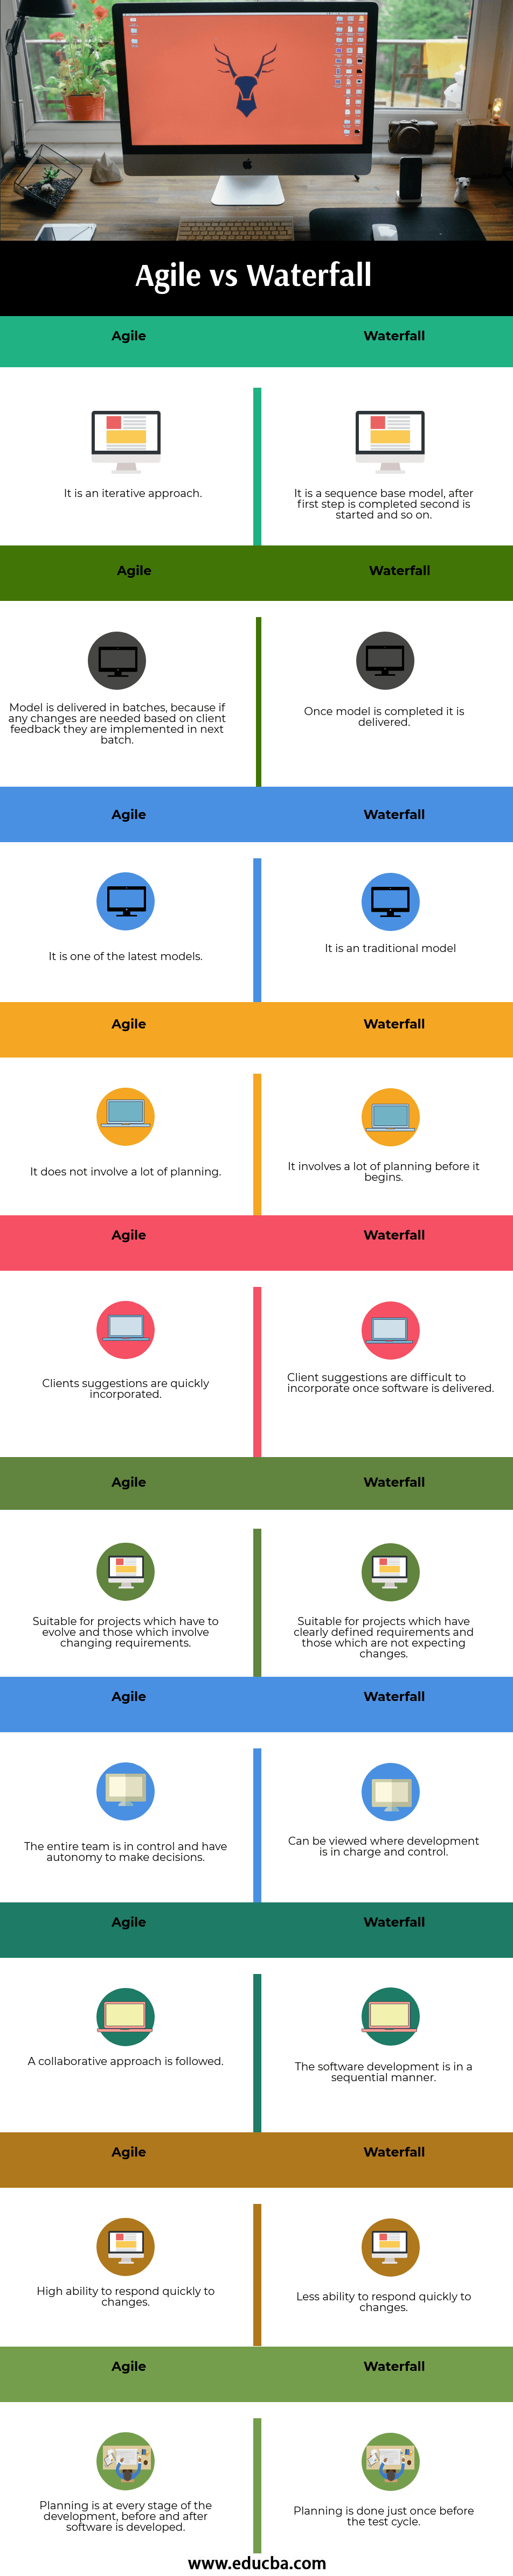 Agile vs Waterfall copy 9